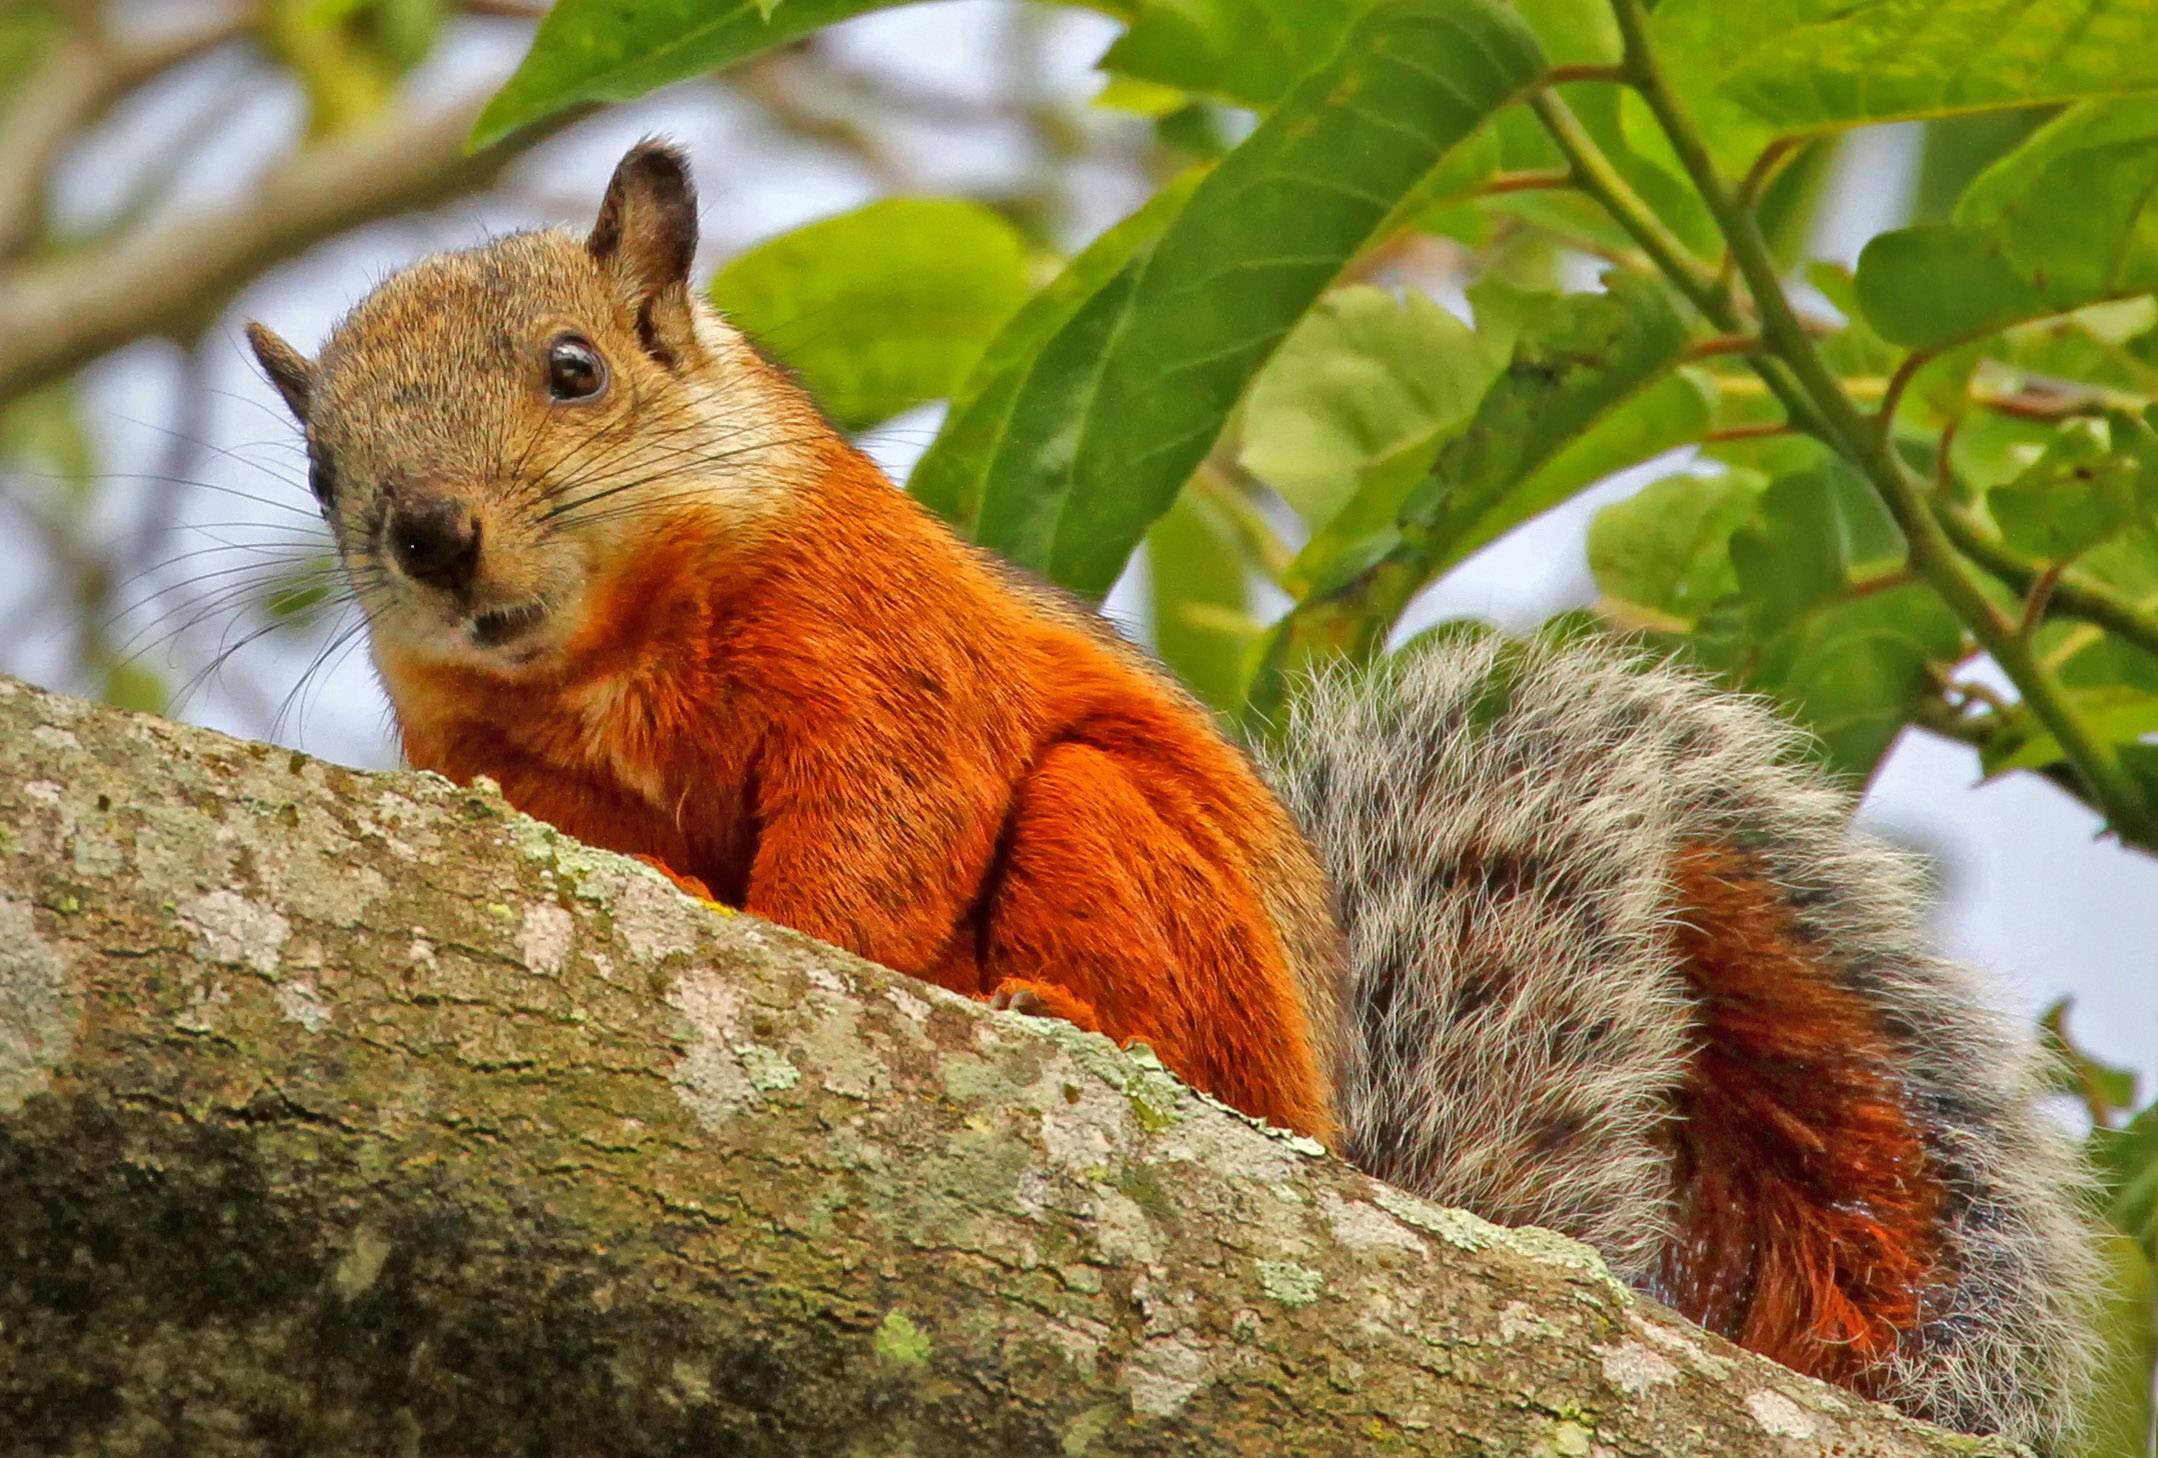 An orange squirrel eats an outdoor breakfast in Costa Rica in October of 2012.